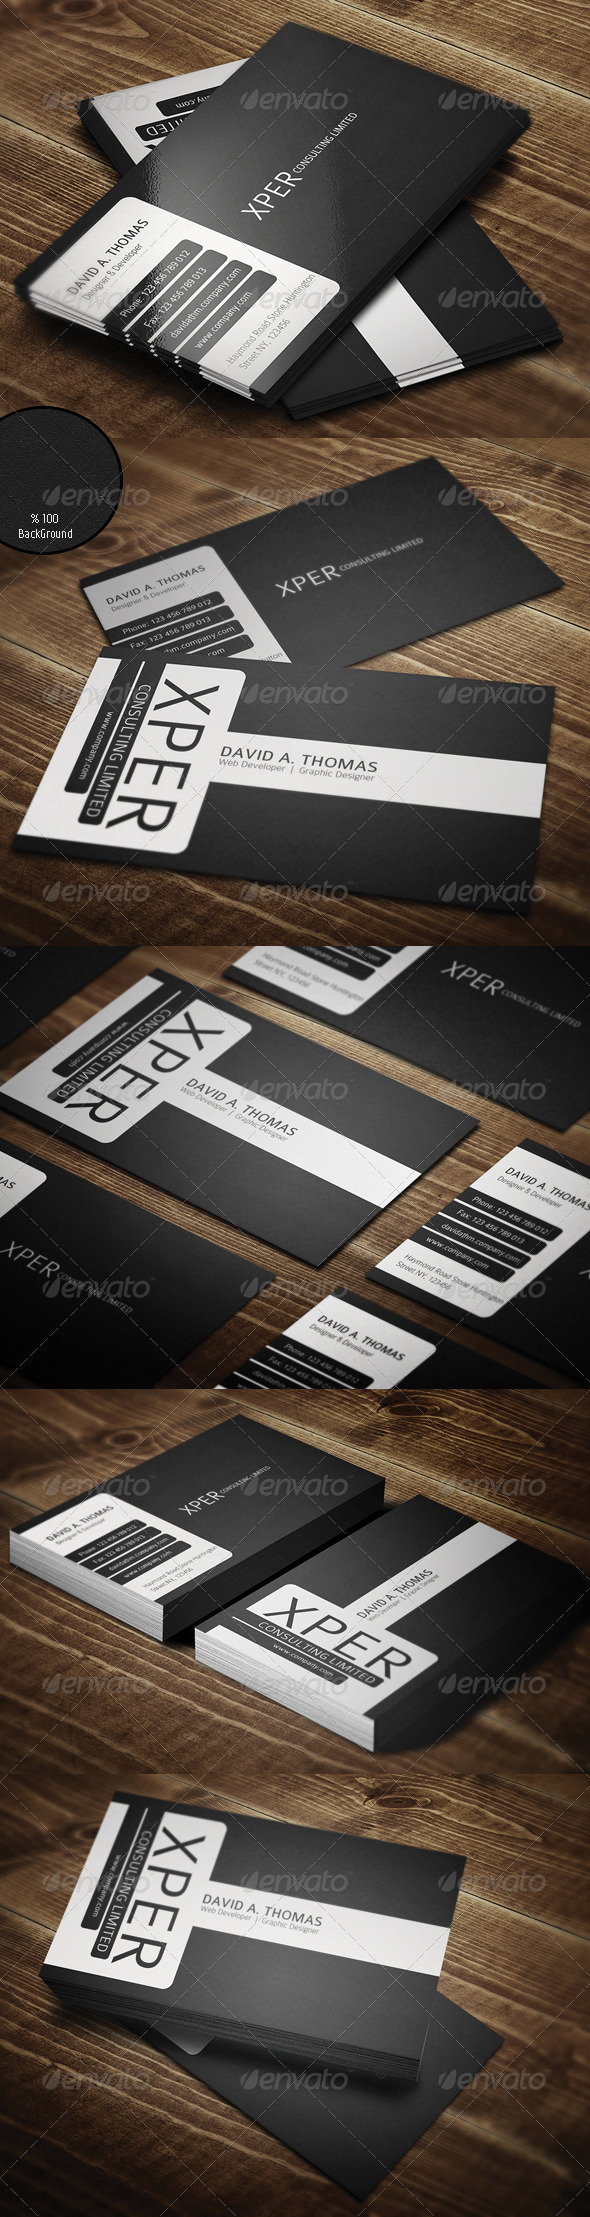 GraphicRiver Personal Business Card 2229432